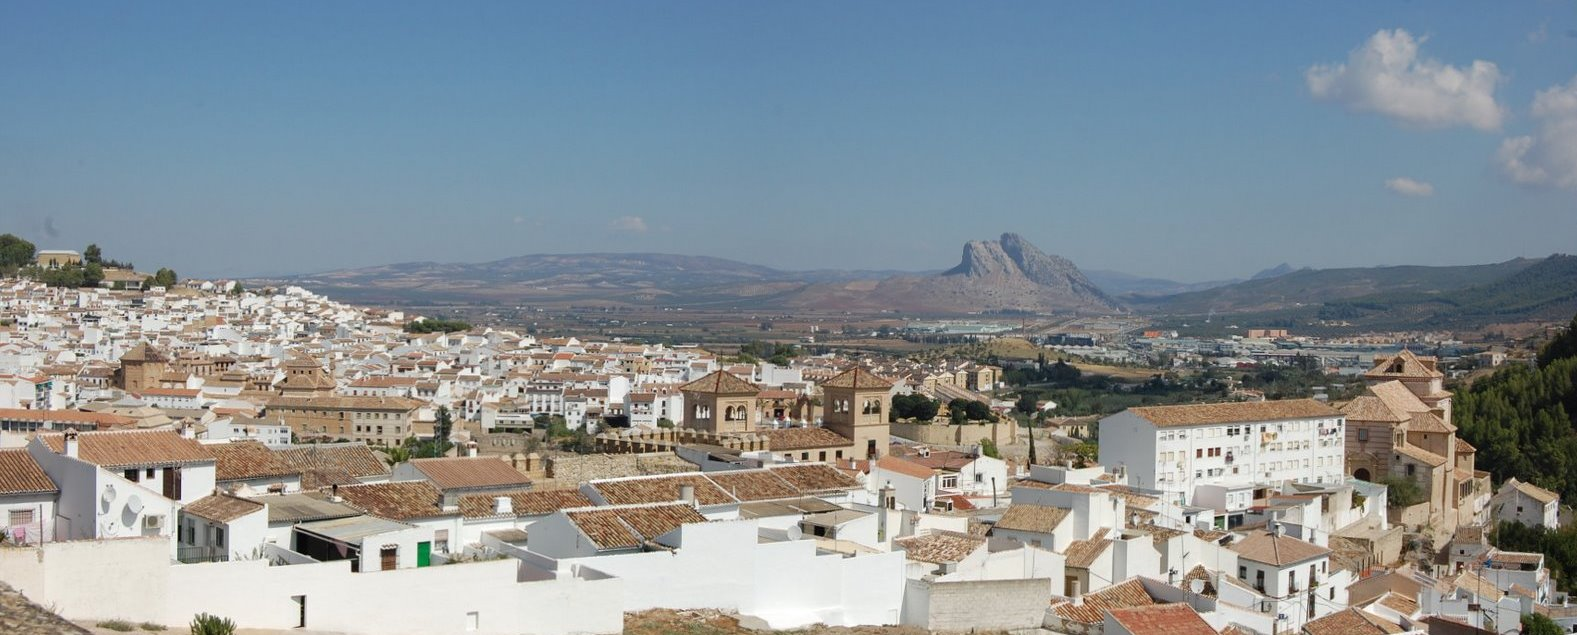 2008_09_29_spain_antequera_view_from_st_maria_stitched2.jpg